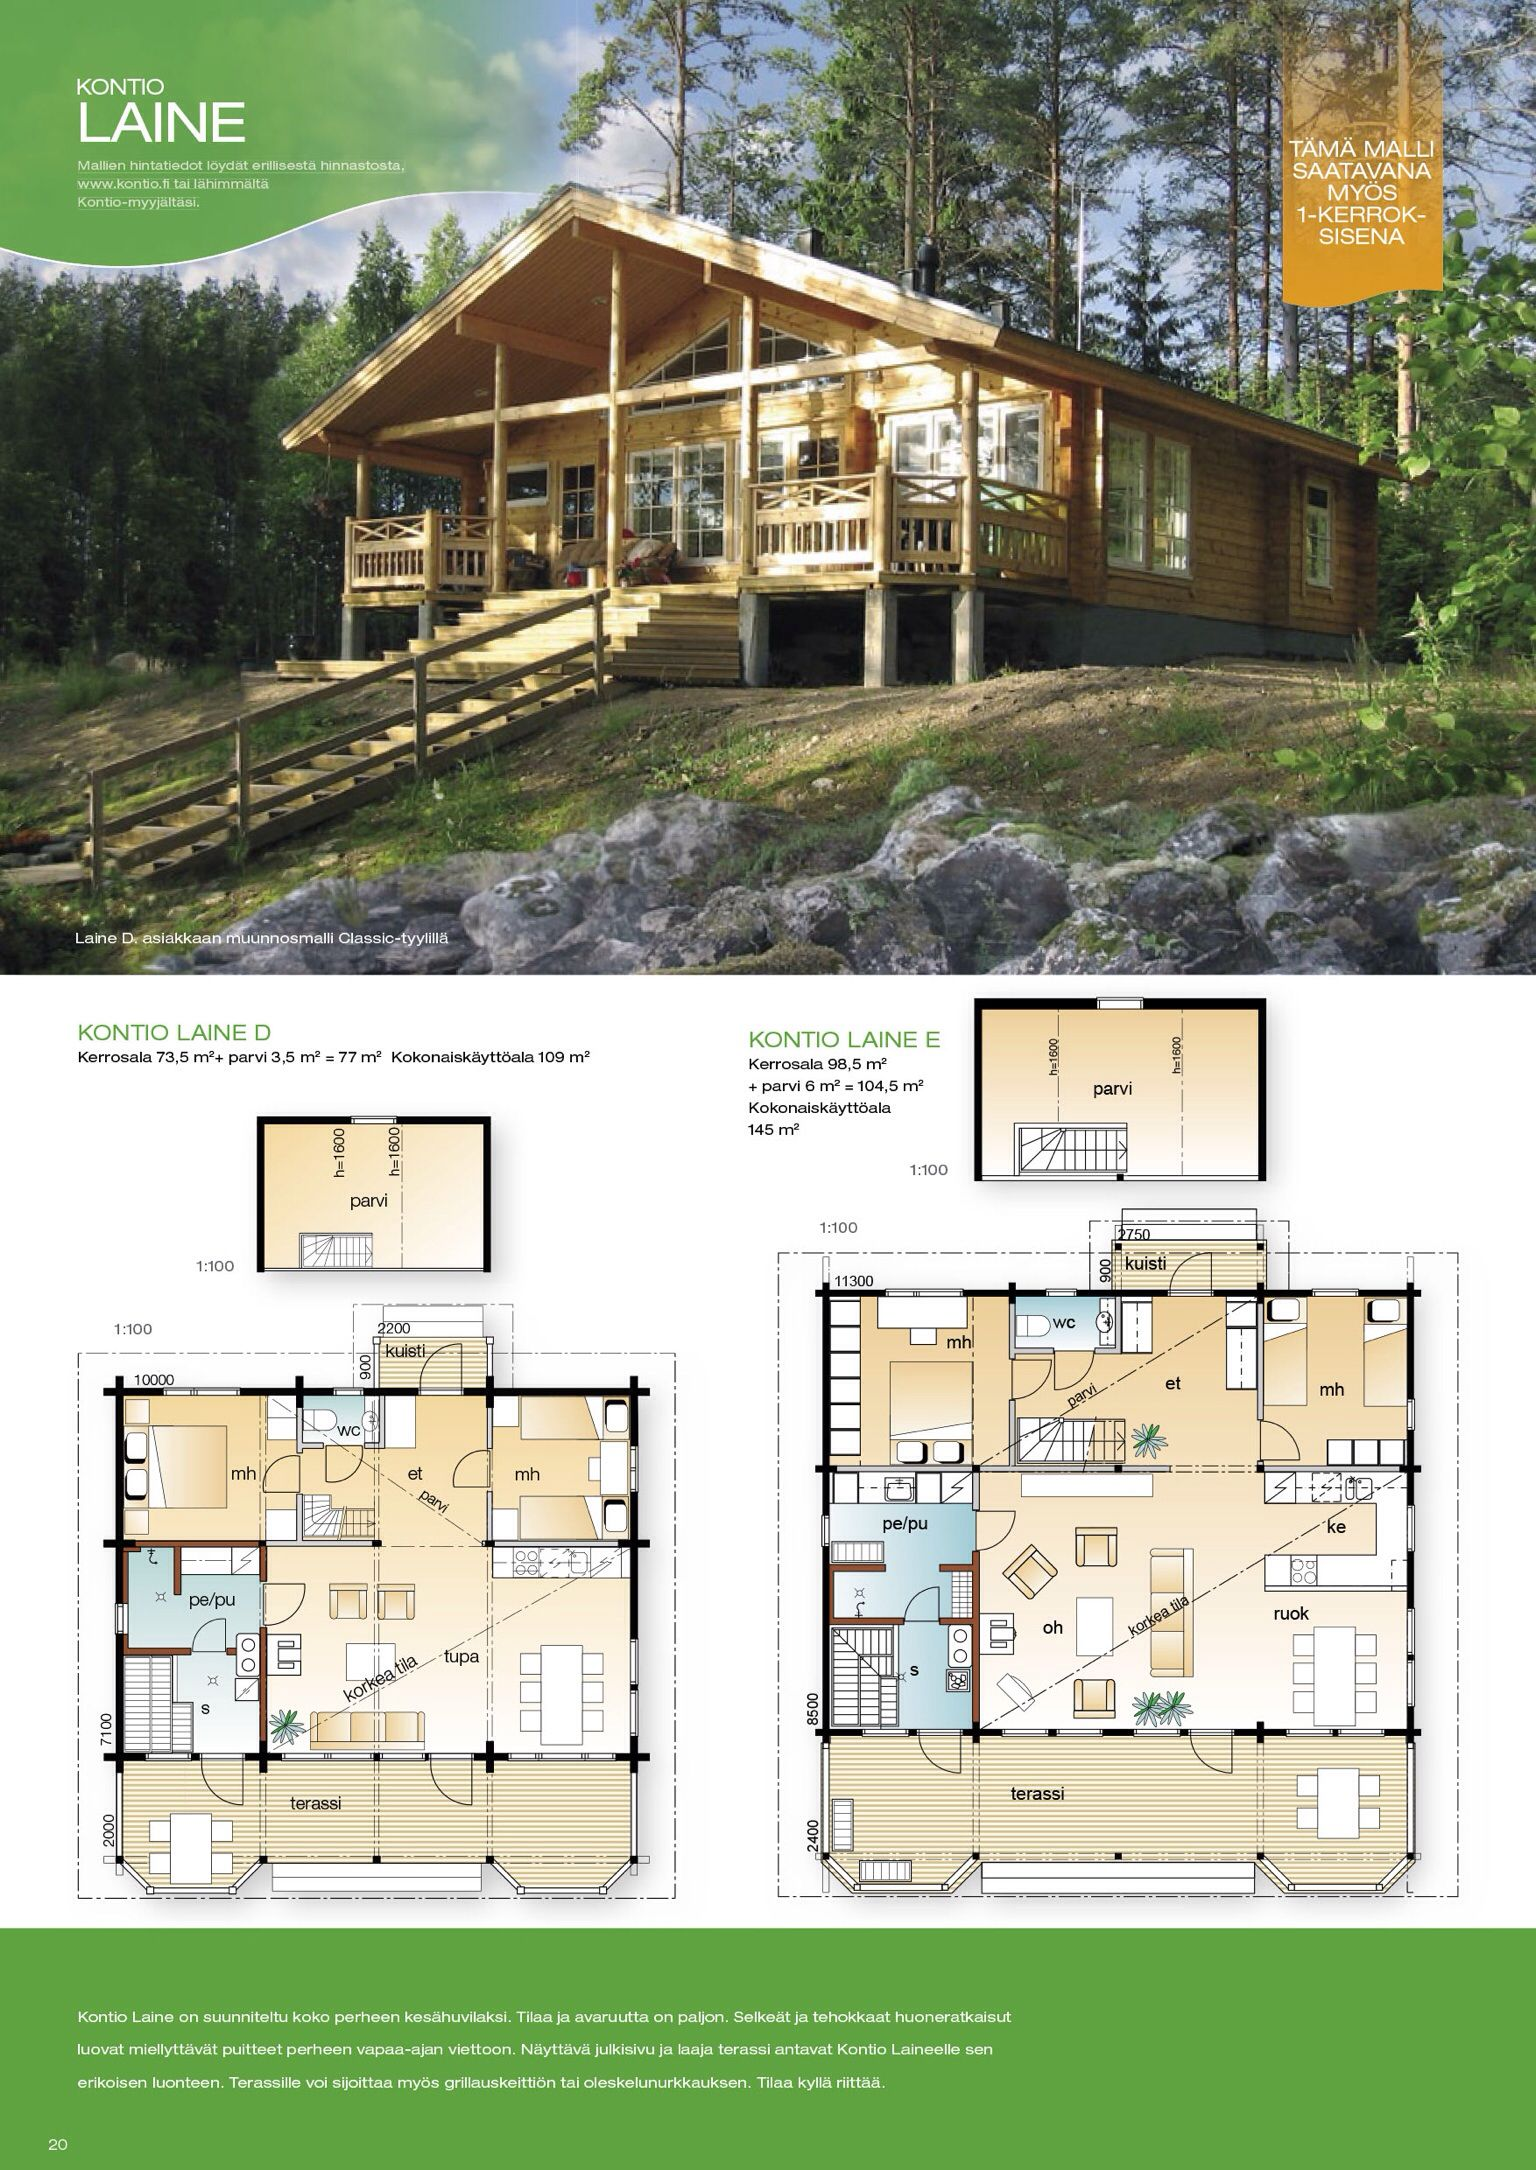 House Plan W3938 V2 Detail From Drummondhouseplans Com: Pin By Kontio Log Houses On KONTİO Kütük Ev In 2019